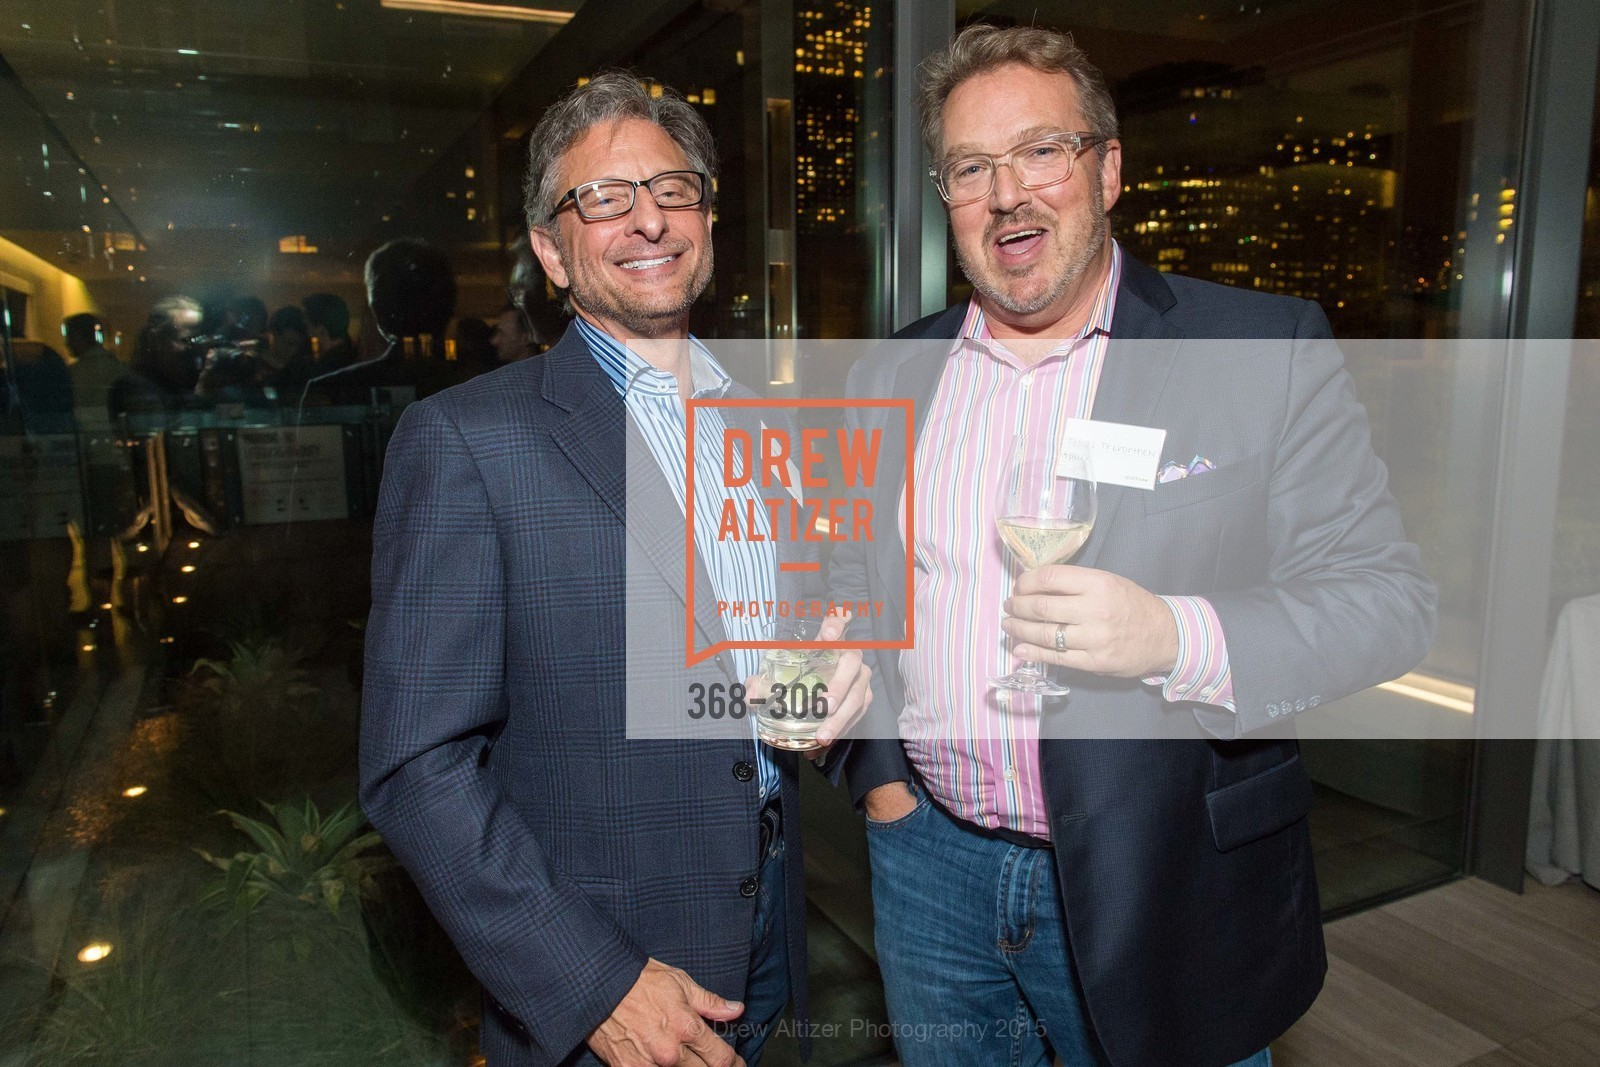 Aaron Mann, Tobin Trevarthen, Sparkpr's Annual Rooftop Soirée, The Battery Penthouse, September 22nd, 2015,Drew Altizer, Drew Altizer Photography, full-service agency, private events, San Francisco photographer, photographer california